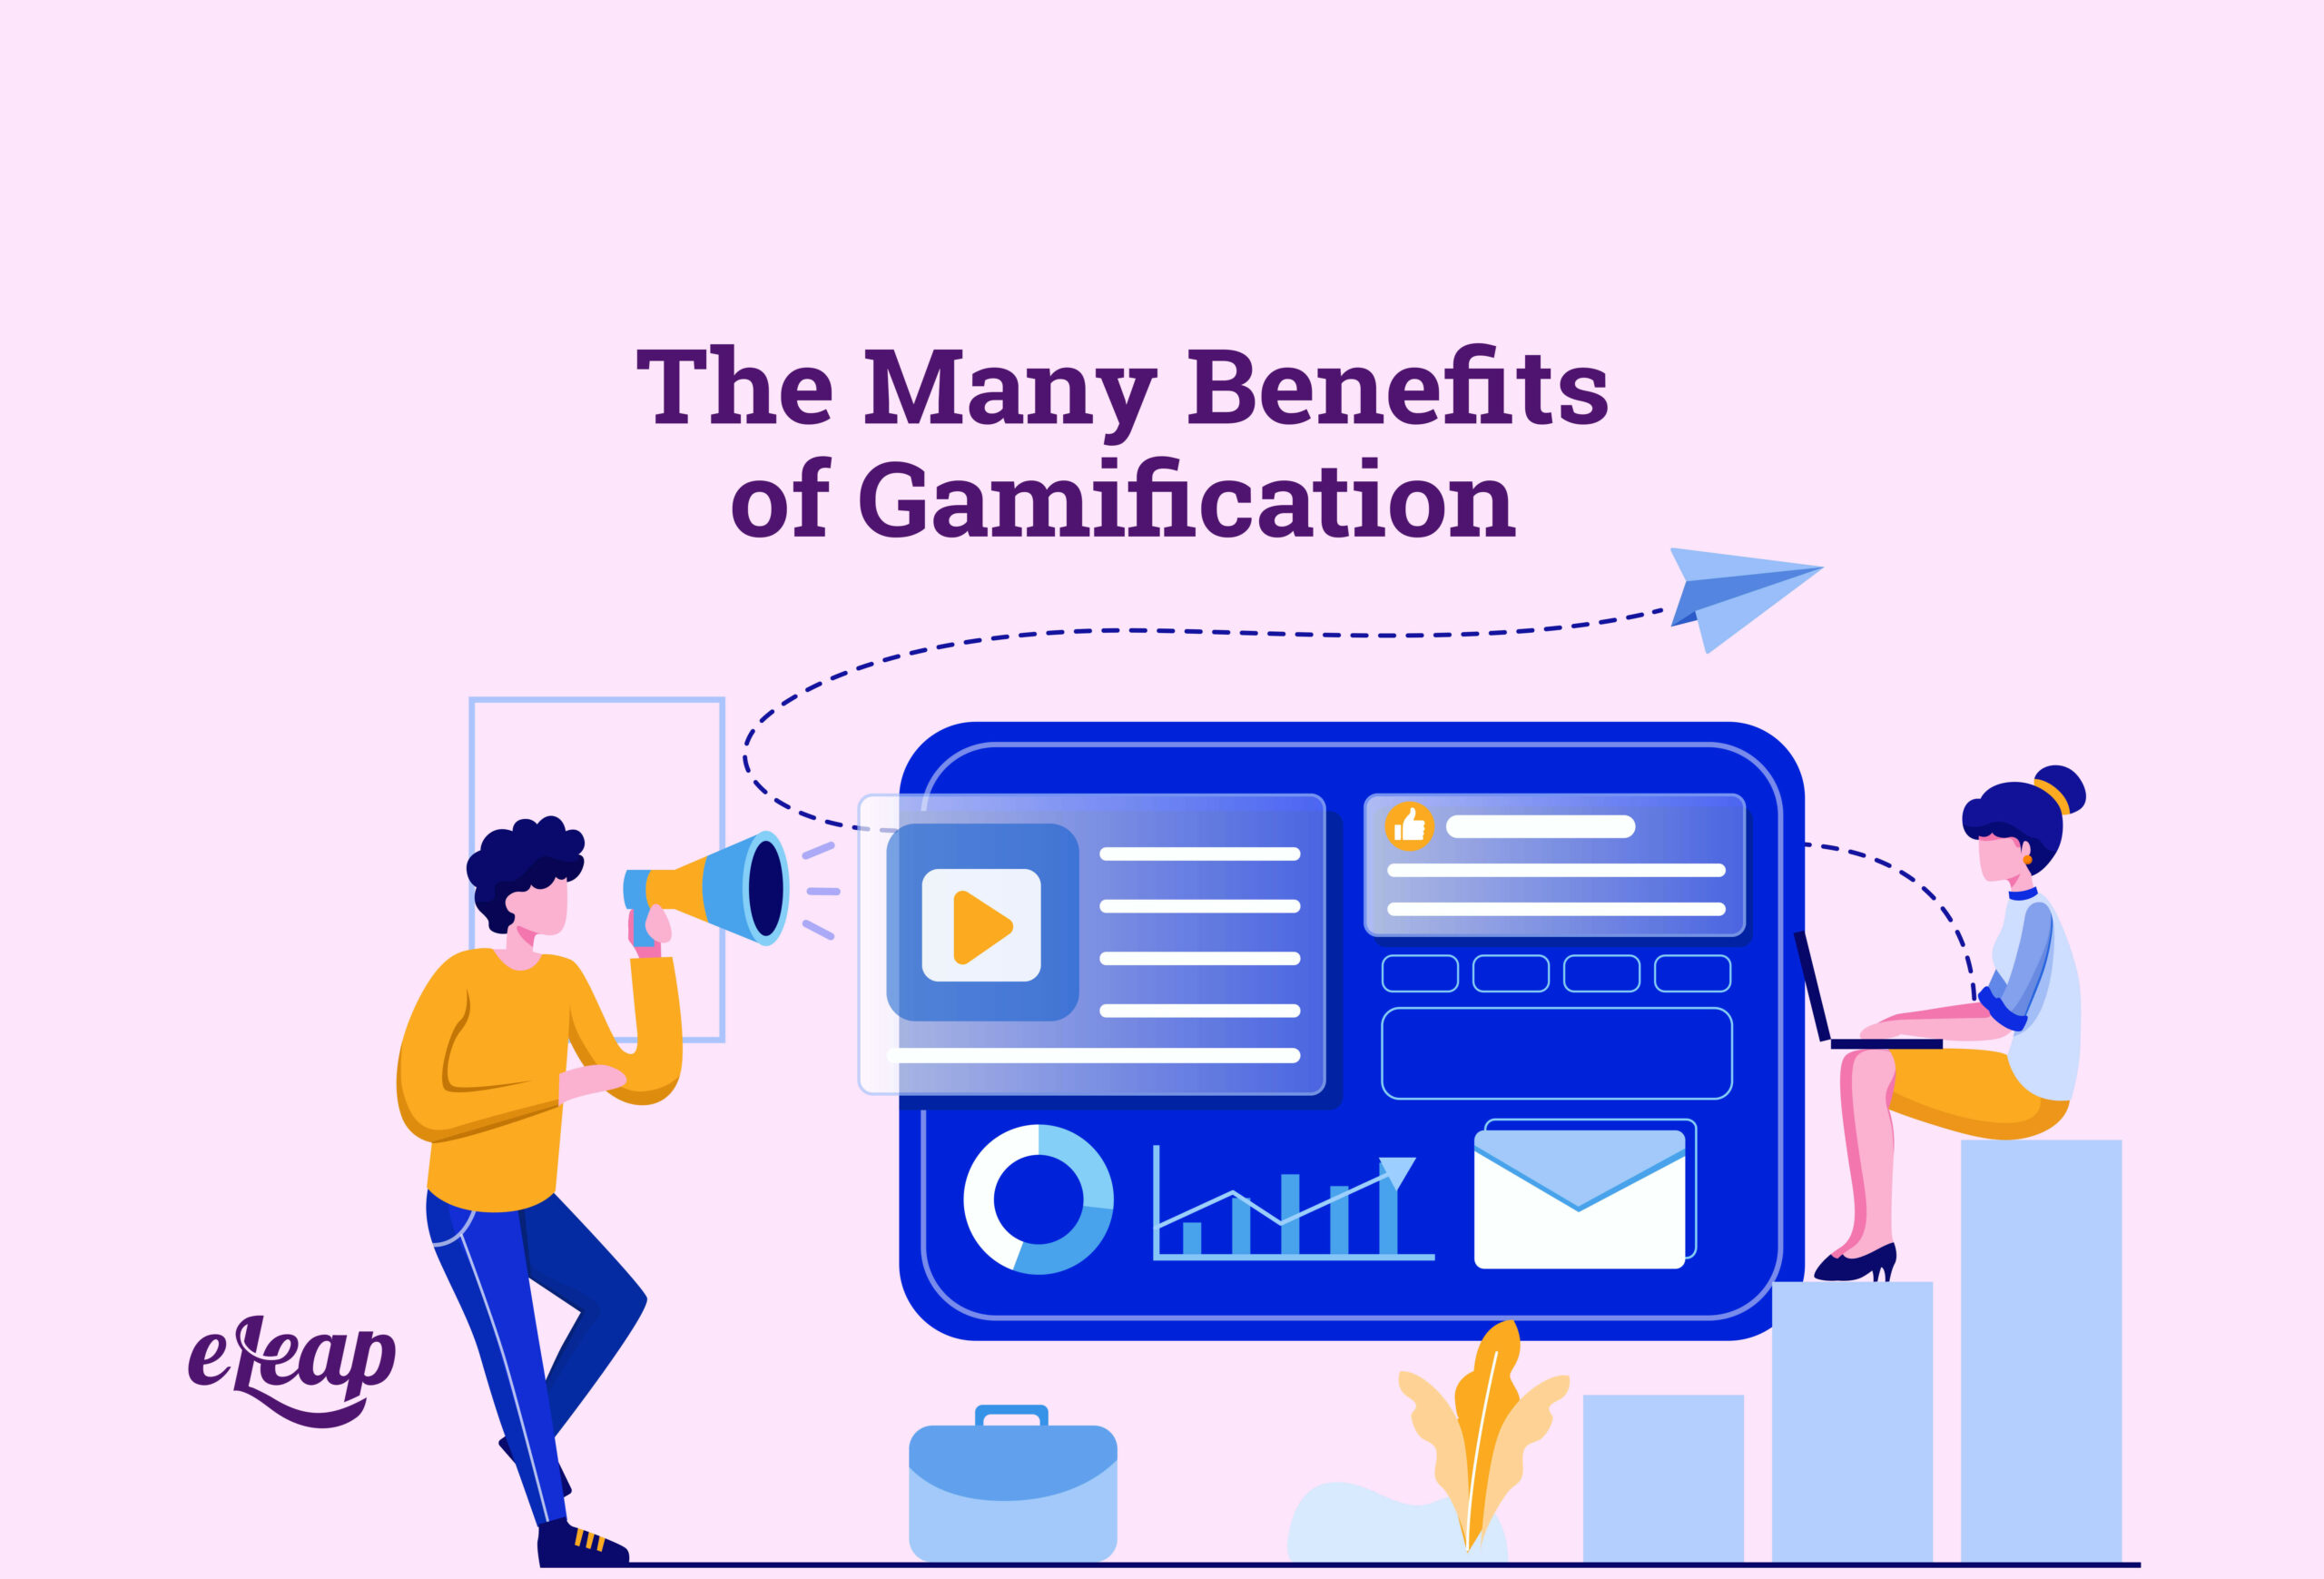 The Many Benefits of Gamification